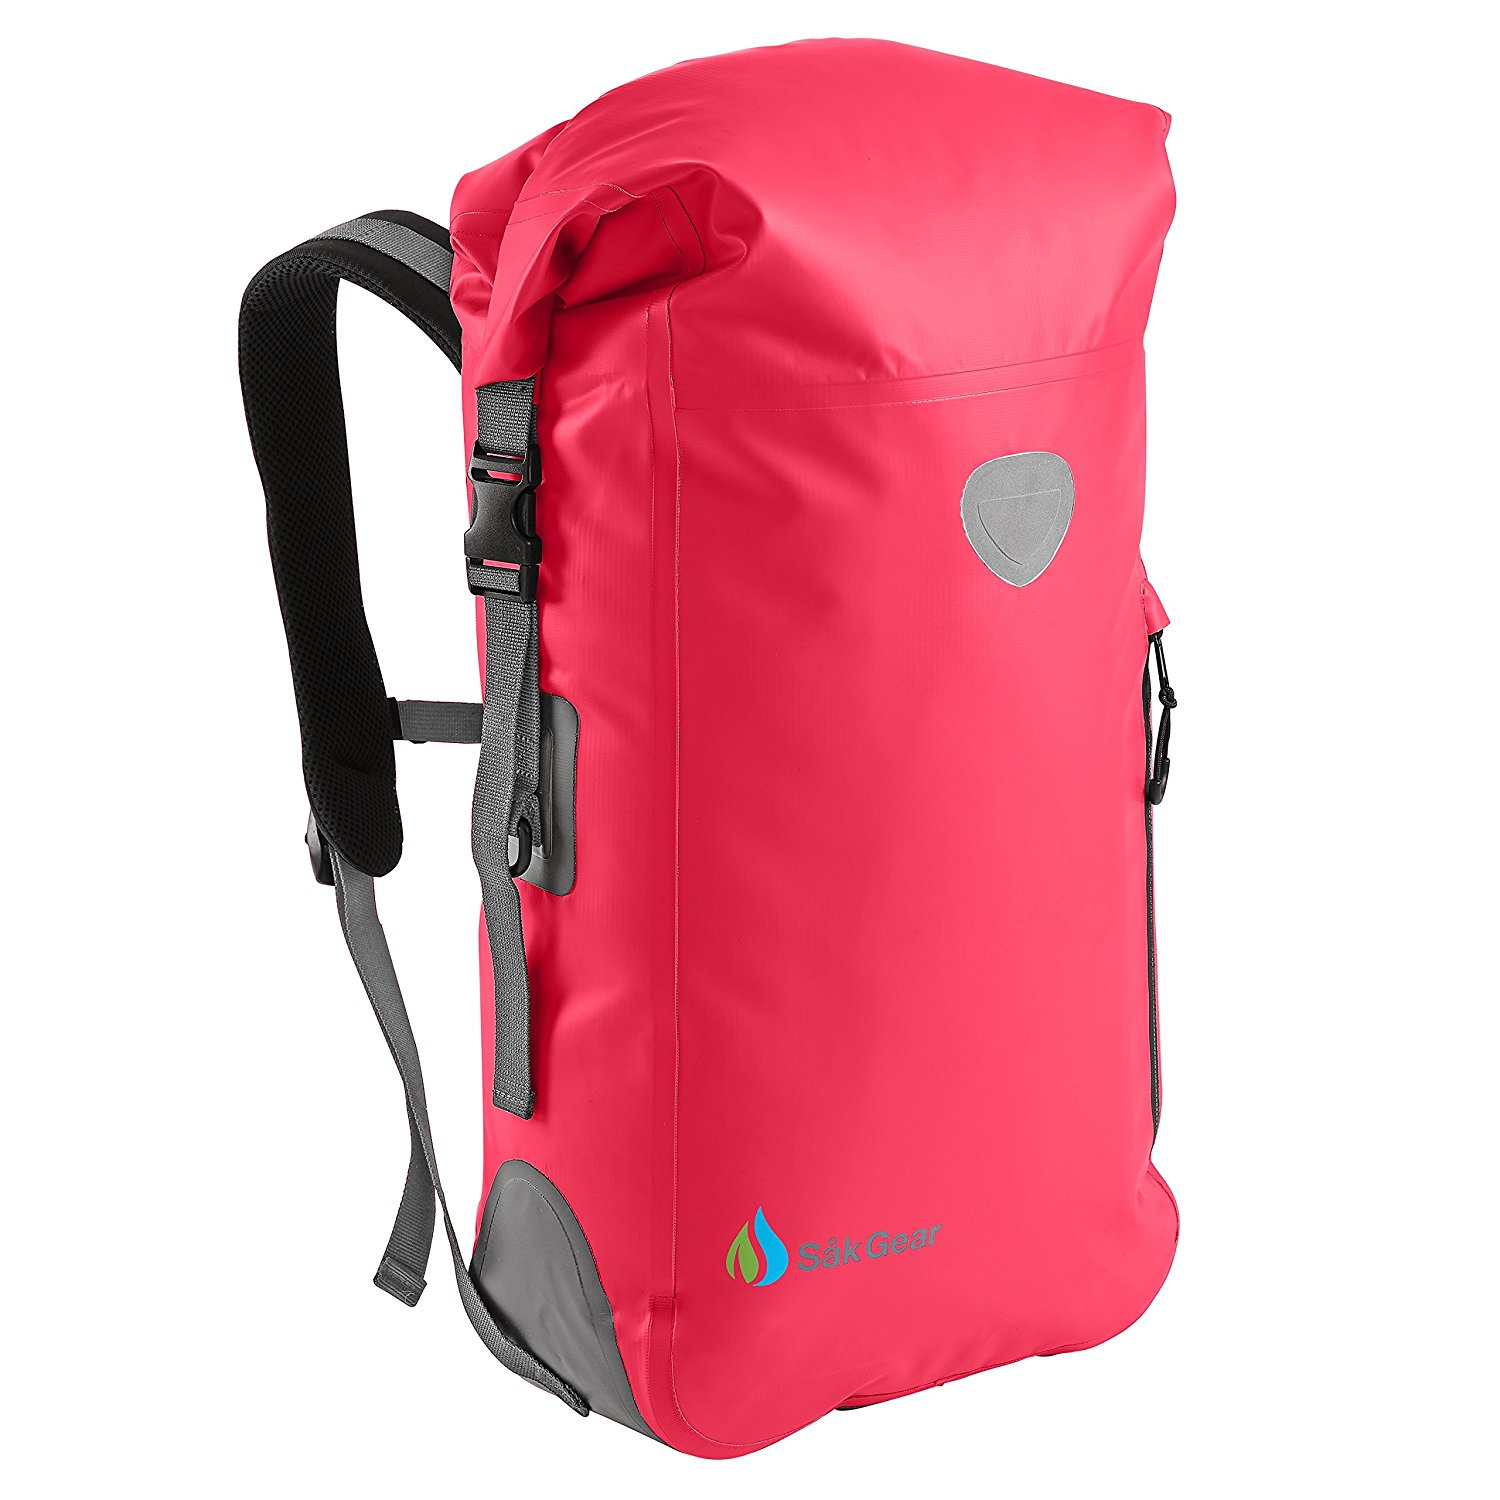 waterproof backpack hiking, sak gear, roll top